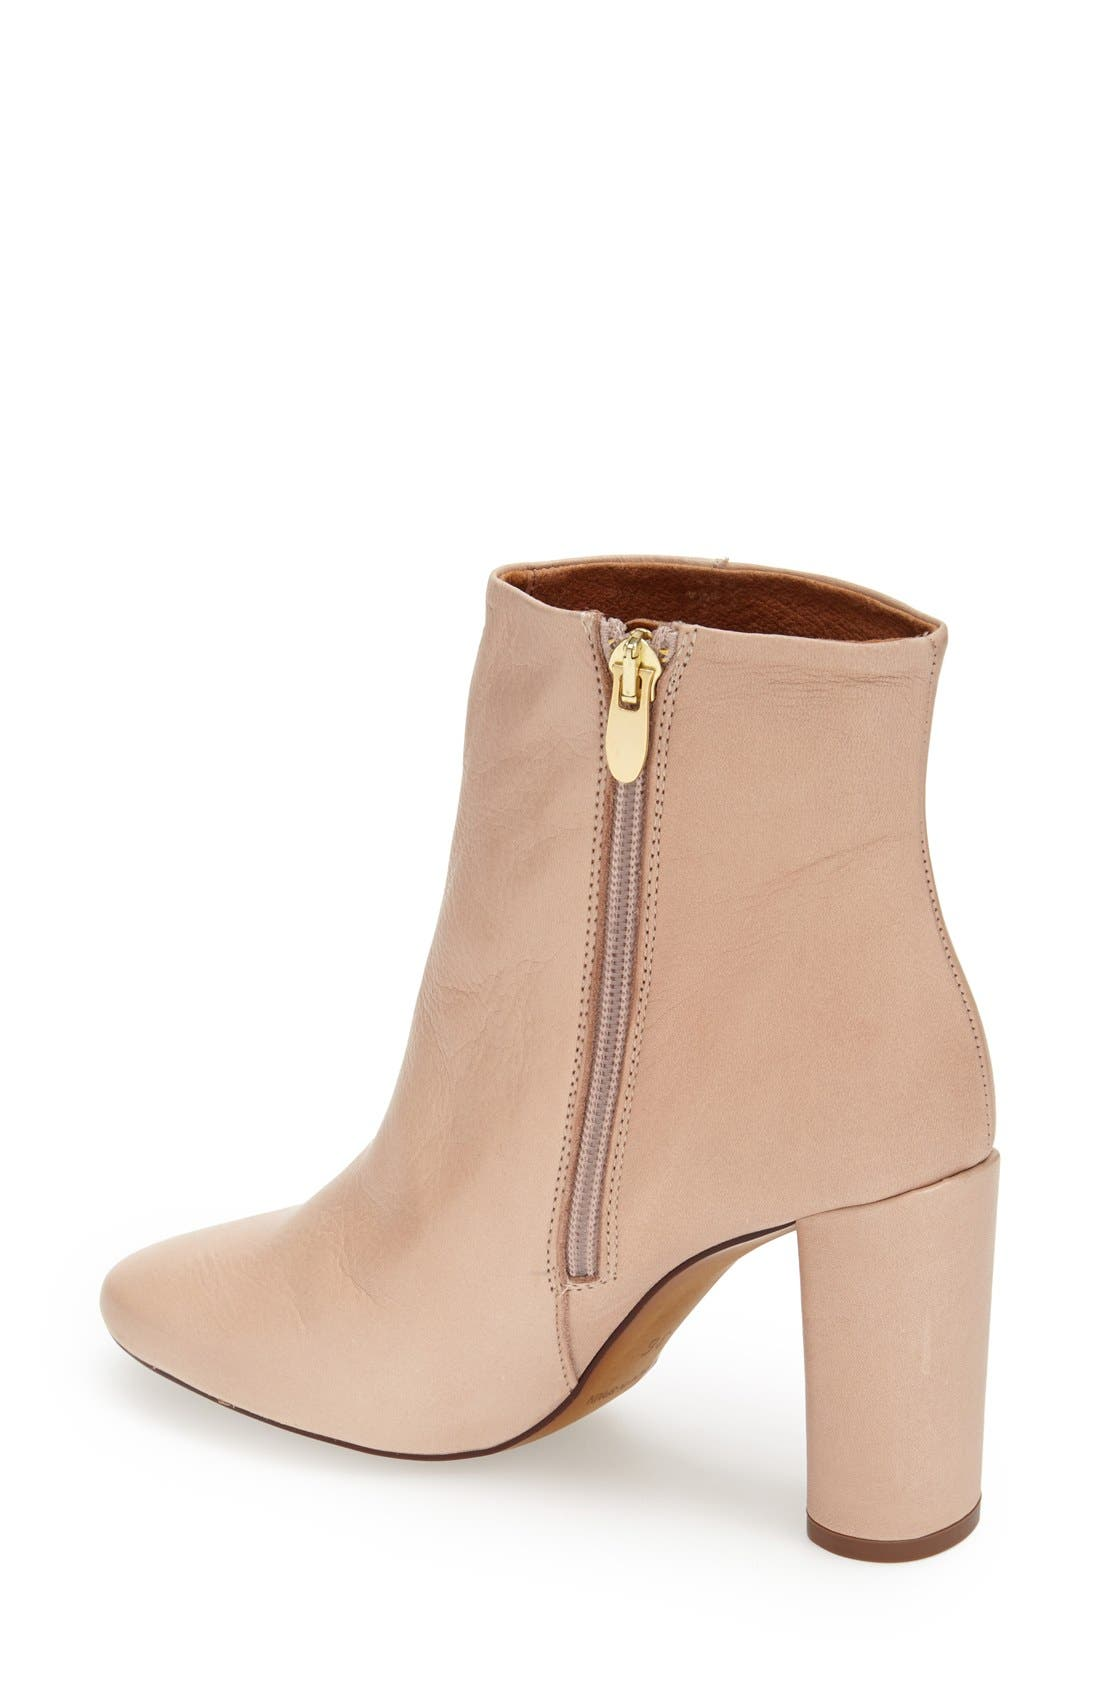 Alternate Image 3  - Topshop 'Magnum' Leather Ankle Boot (Women)